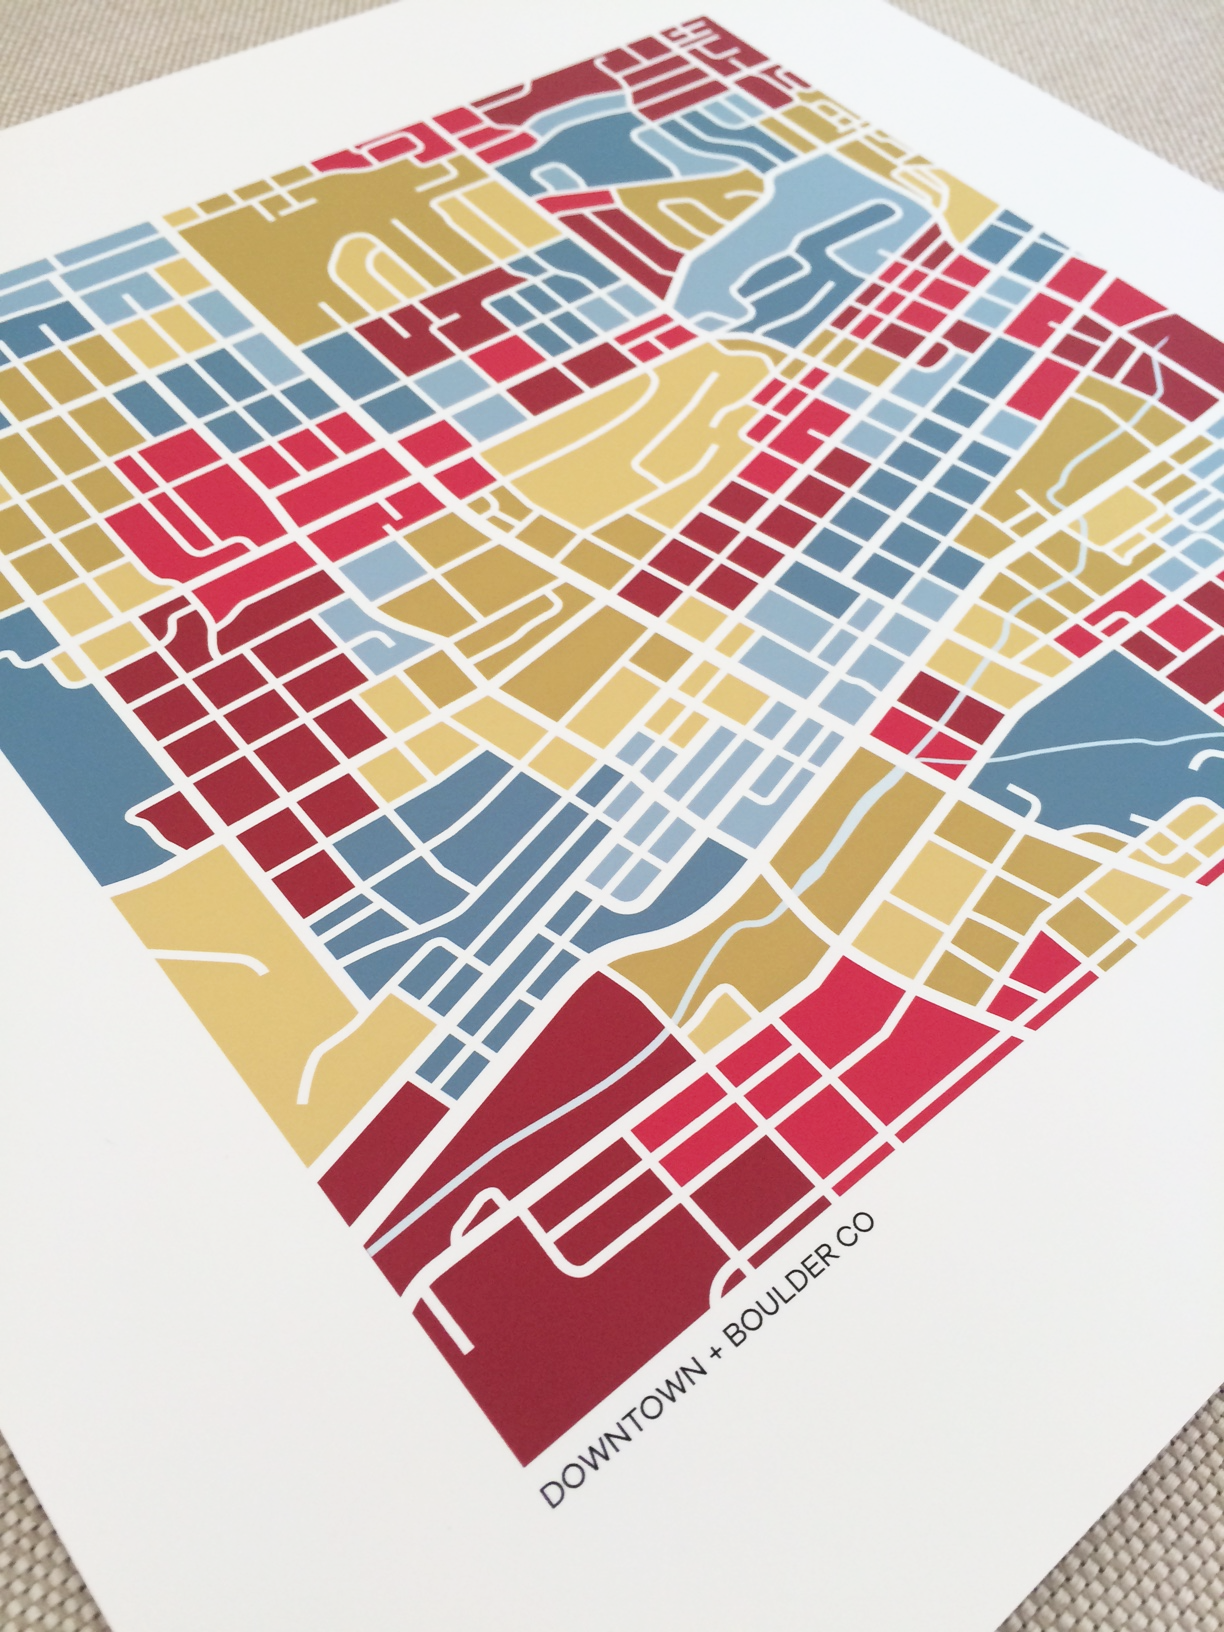 Boulder CO Downtown Map Print GridLove Designs